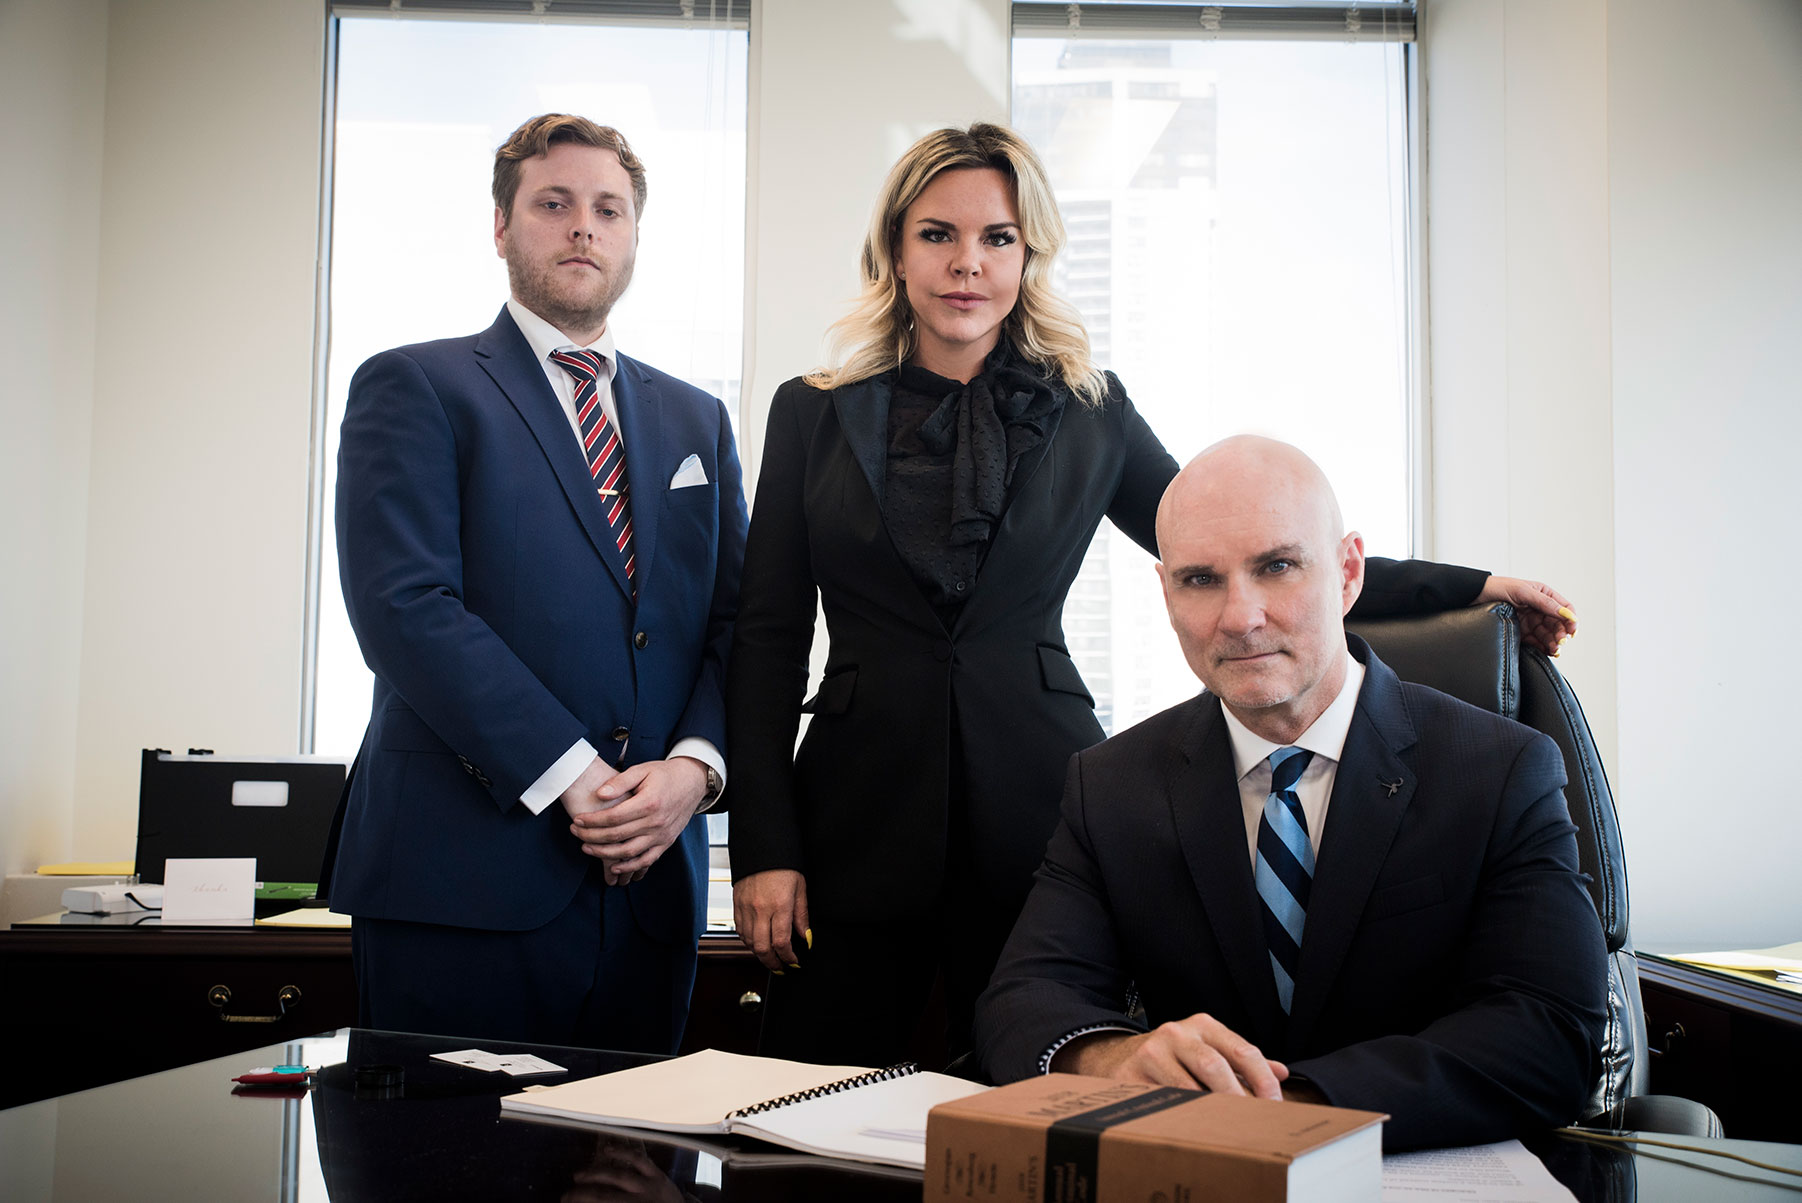 Criminal Defence Lawyers, Dean Collett, Jessica Read, and Jason Alsbergas